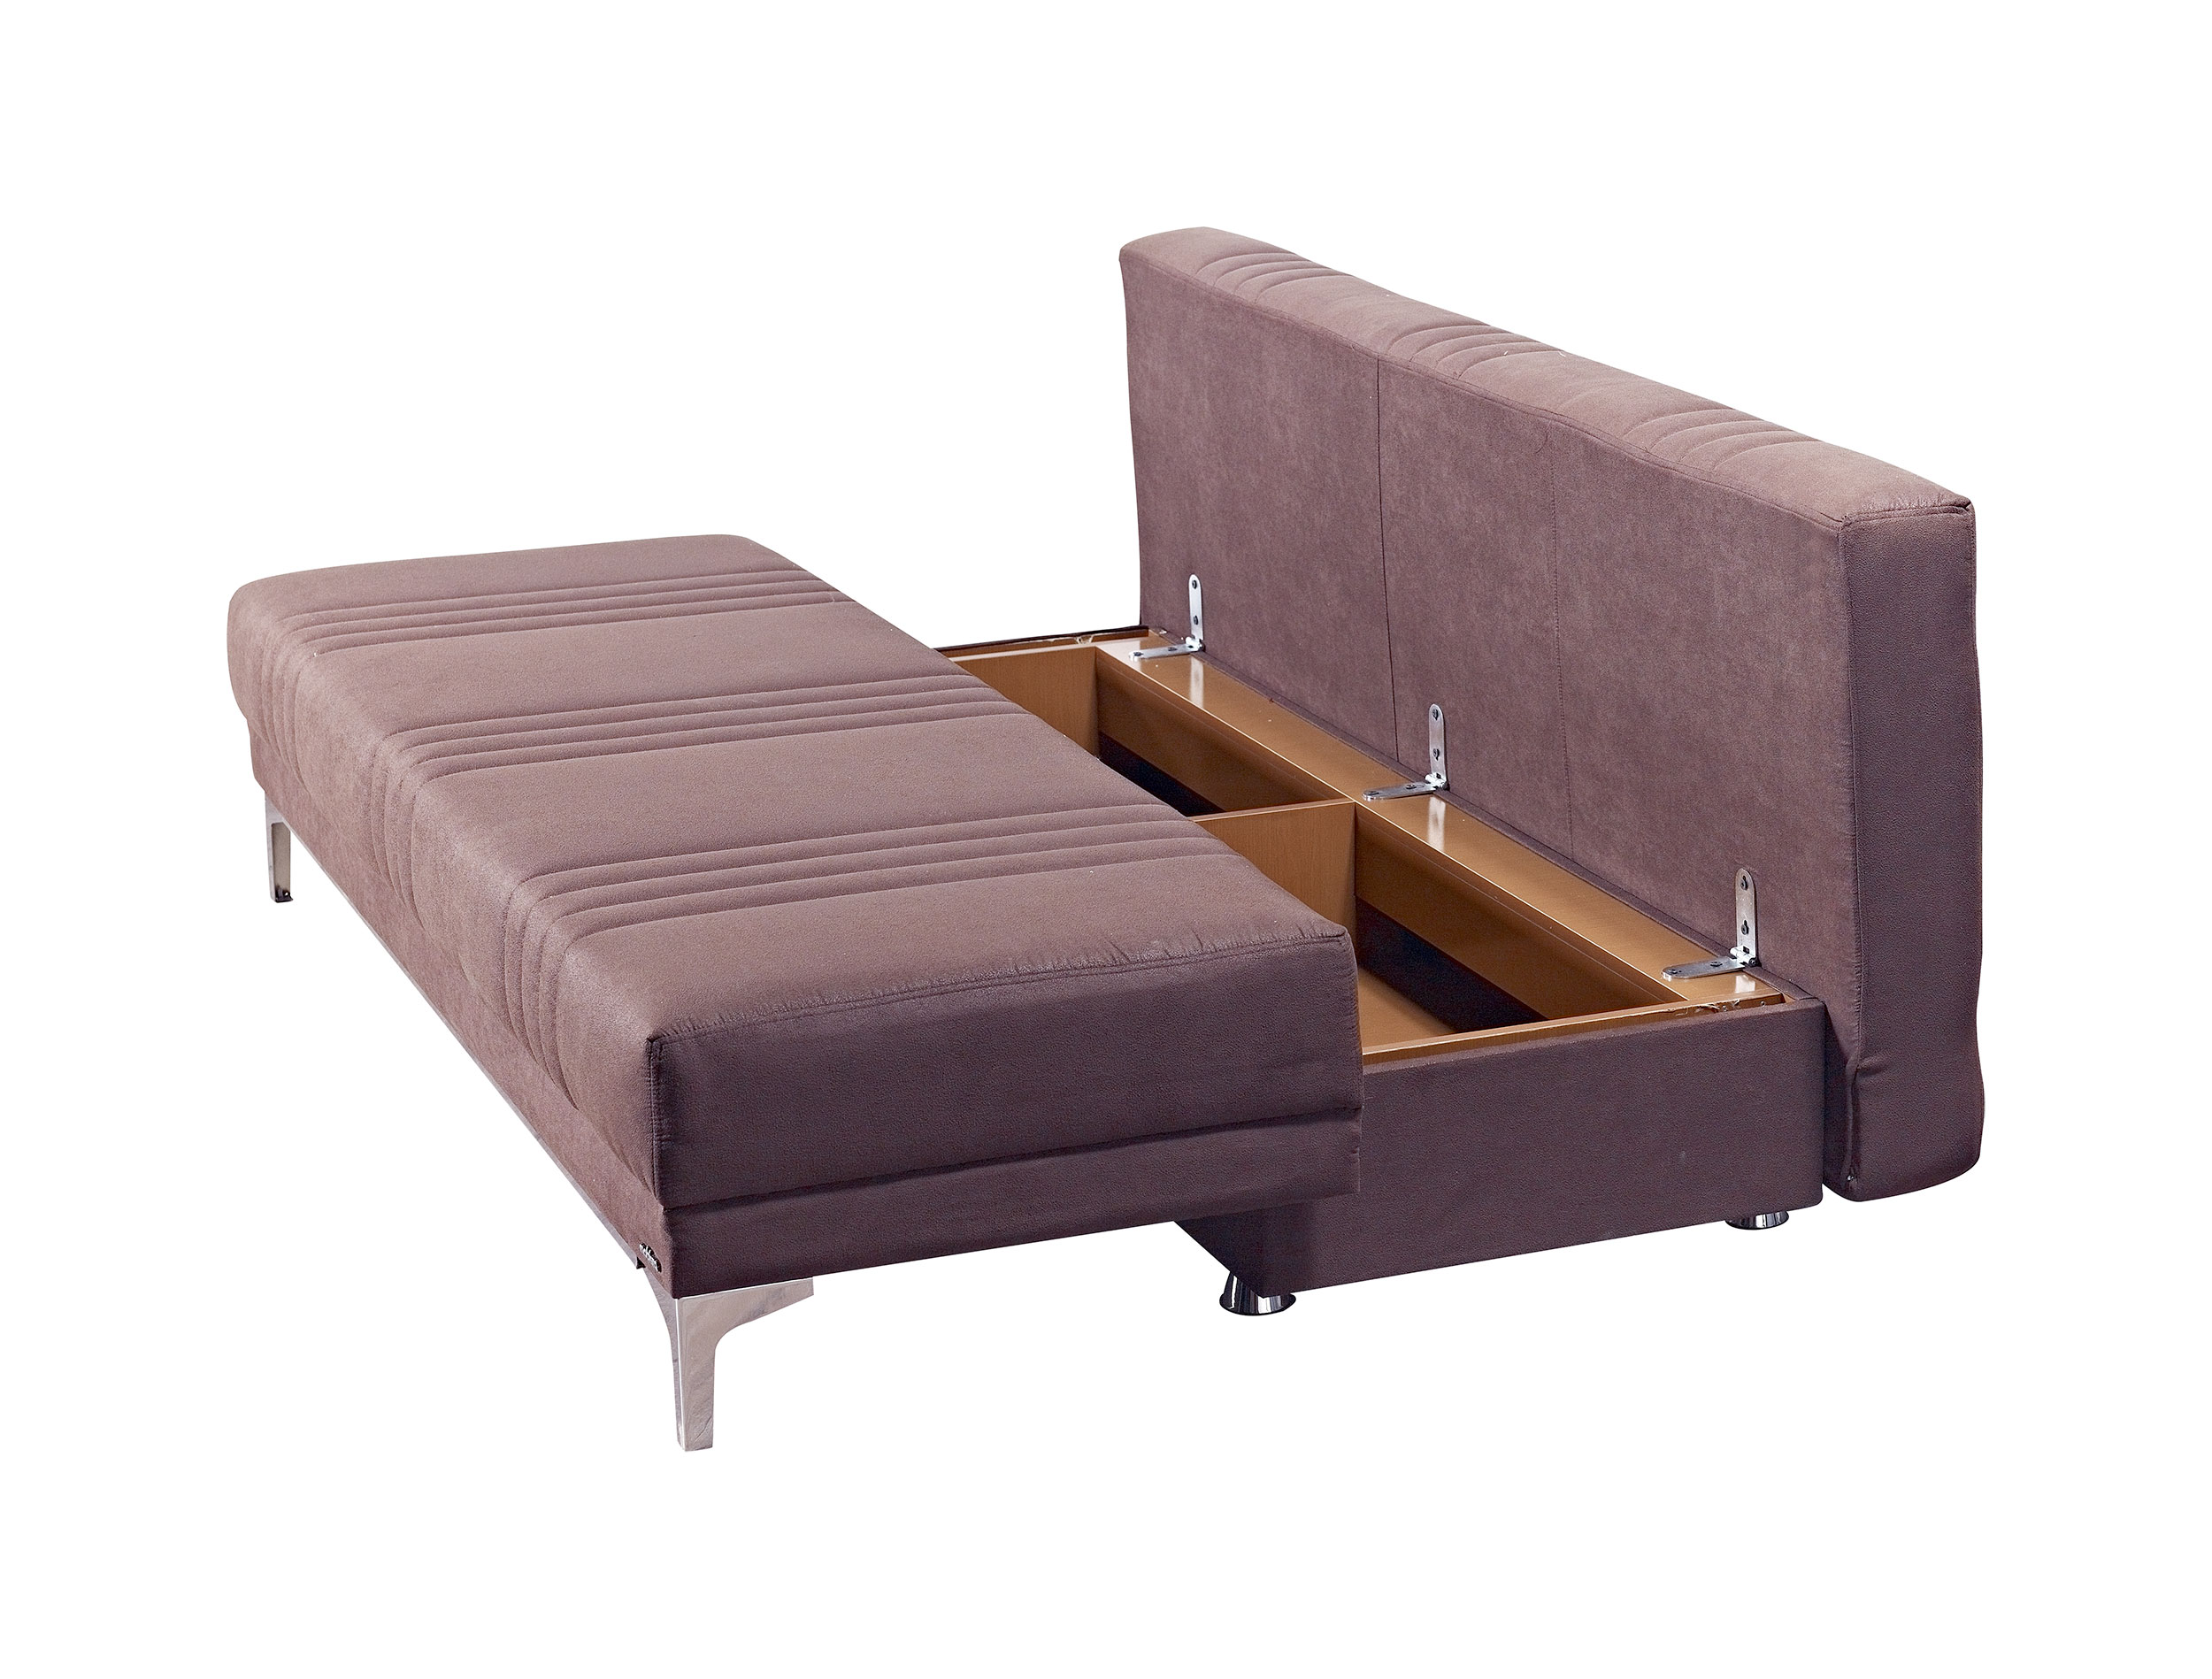 Queen size sofa beds sofa cool queen bed mattress thesofa Queen size sofa bed